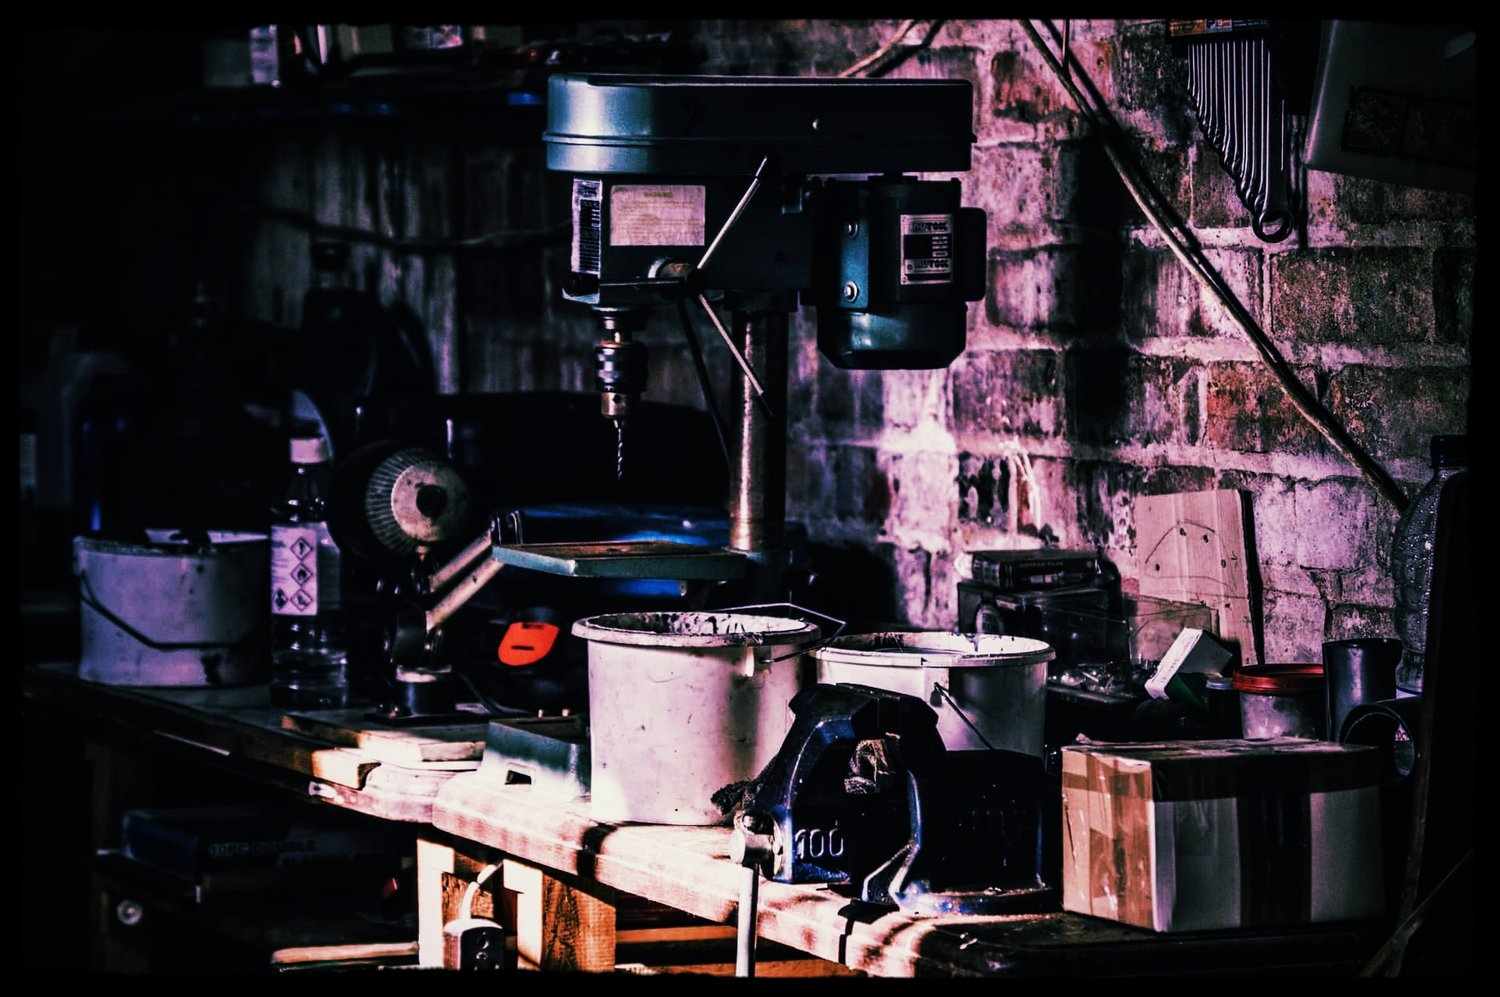 1 basement storage garage junk removal clean out mrjunk garage junk removal basement clean out storage removal solutioingenieria Gallery